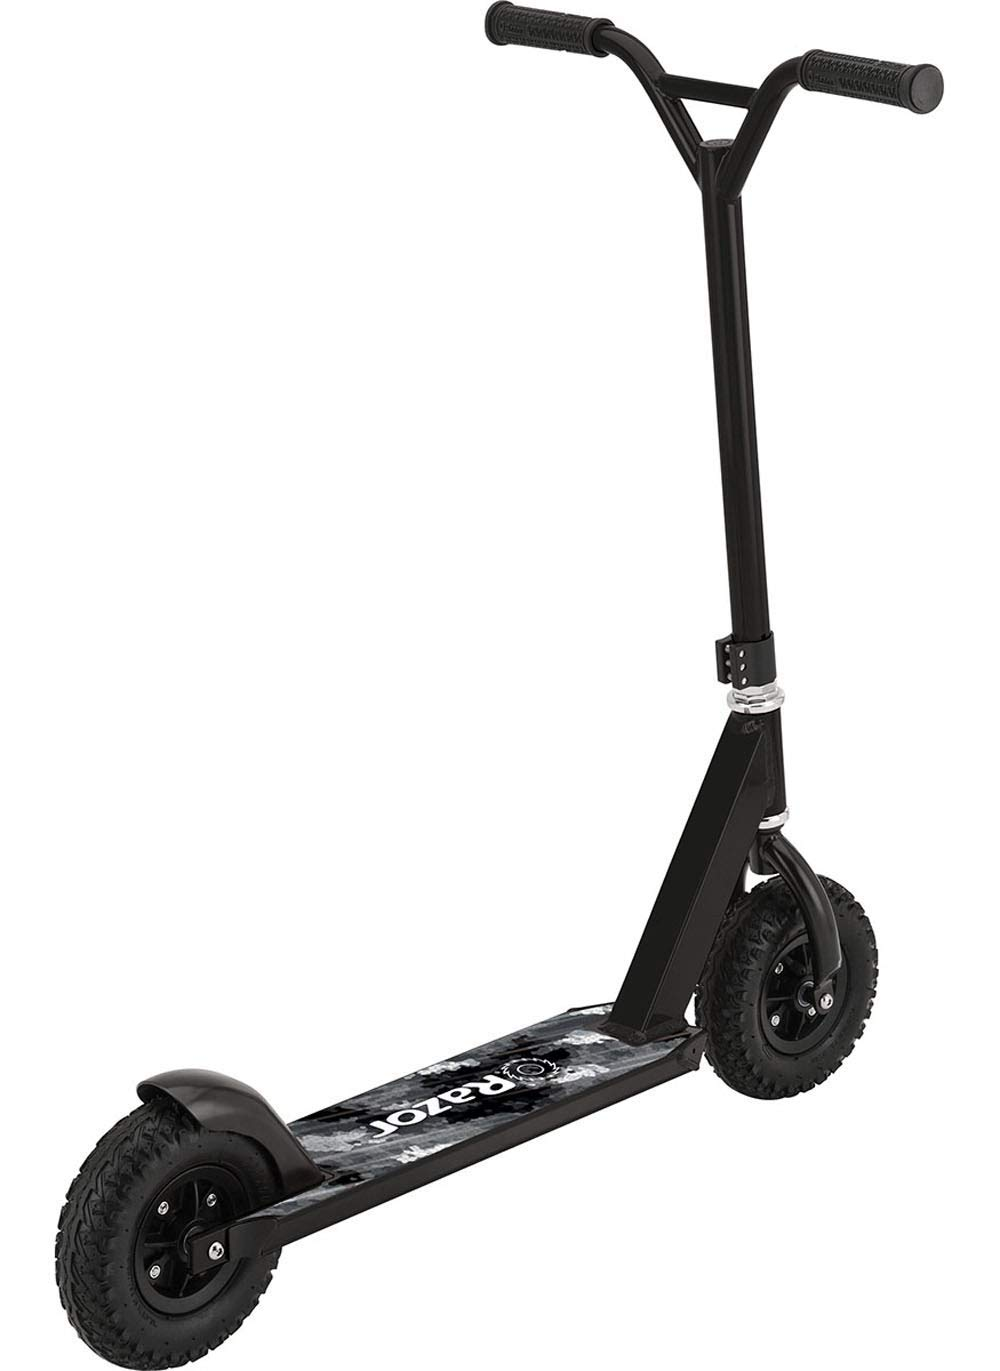 Amazon.com : Razor Label RDS Scooter, Black (Renewed ...